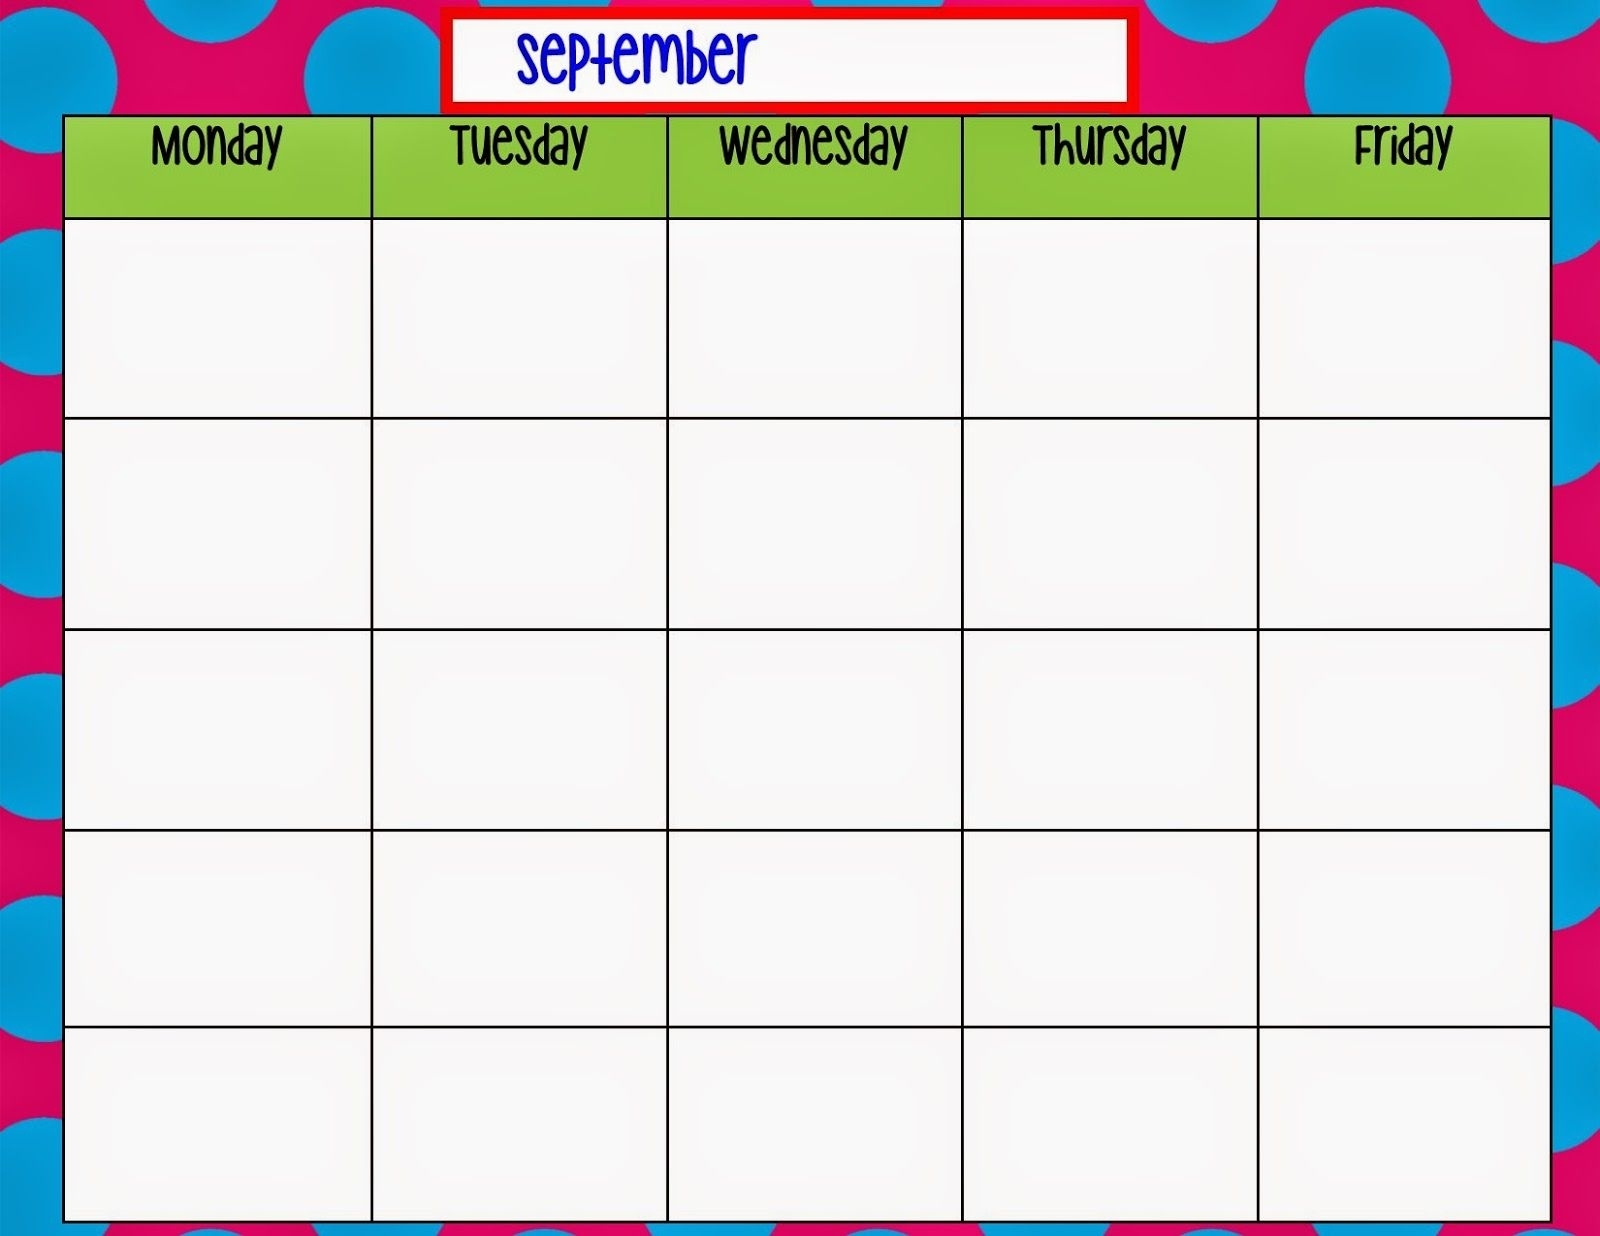 Schedule Template Monday Through Friday Weekly R Word Monthly | Smorad regarding Monthly Calendar Templates Monday To Friday